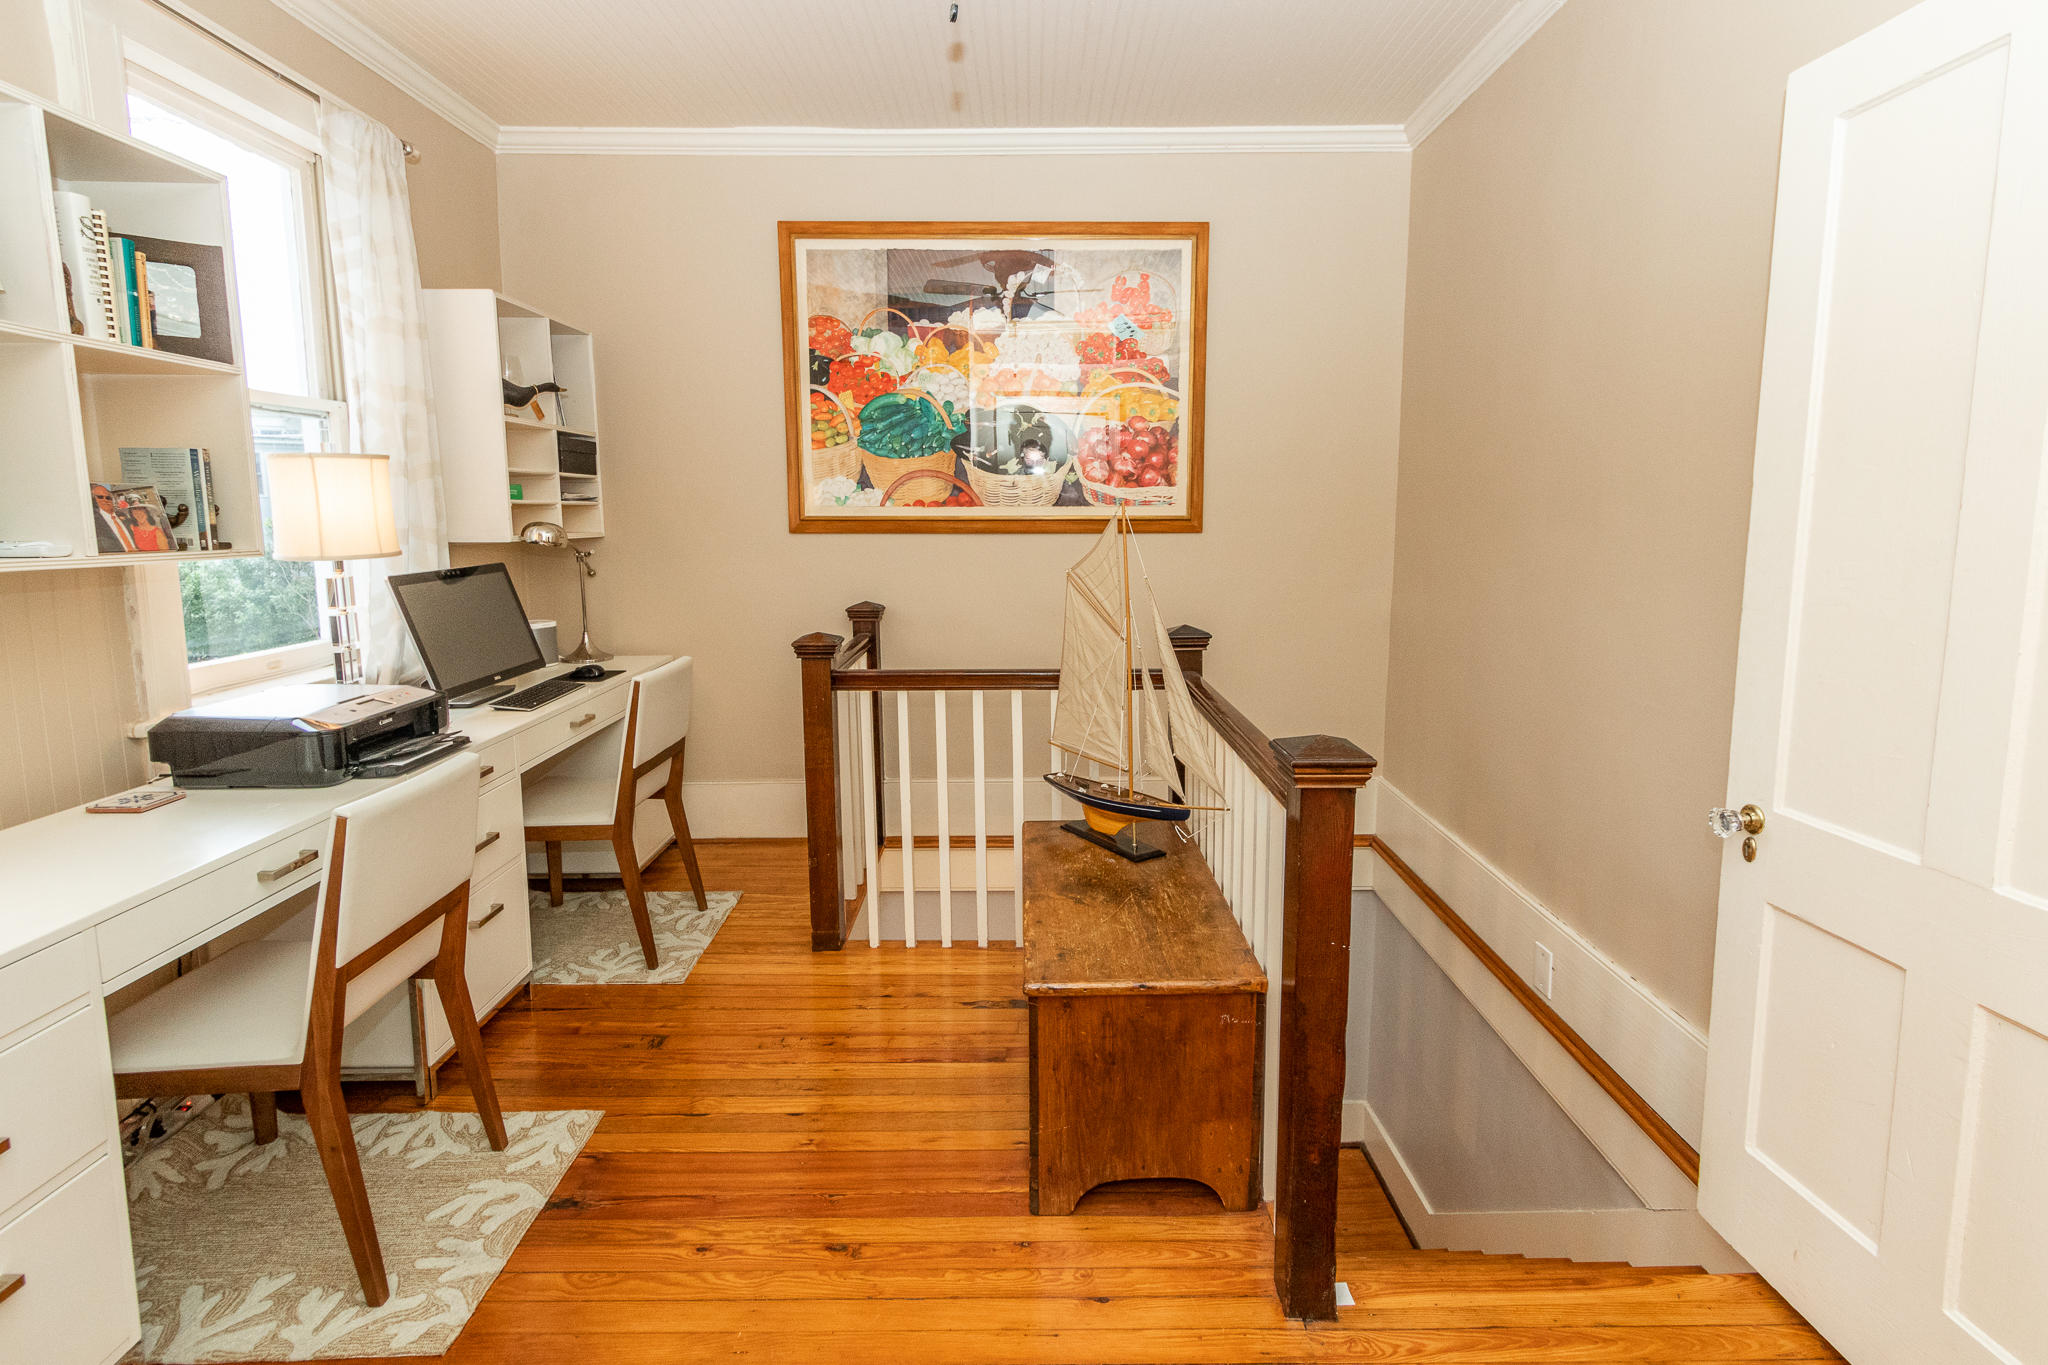 South of Broad Homes For Sale - 164 Tradd, Charleston, SC - 19